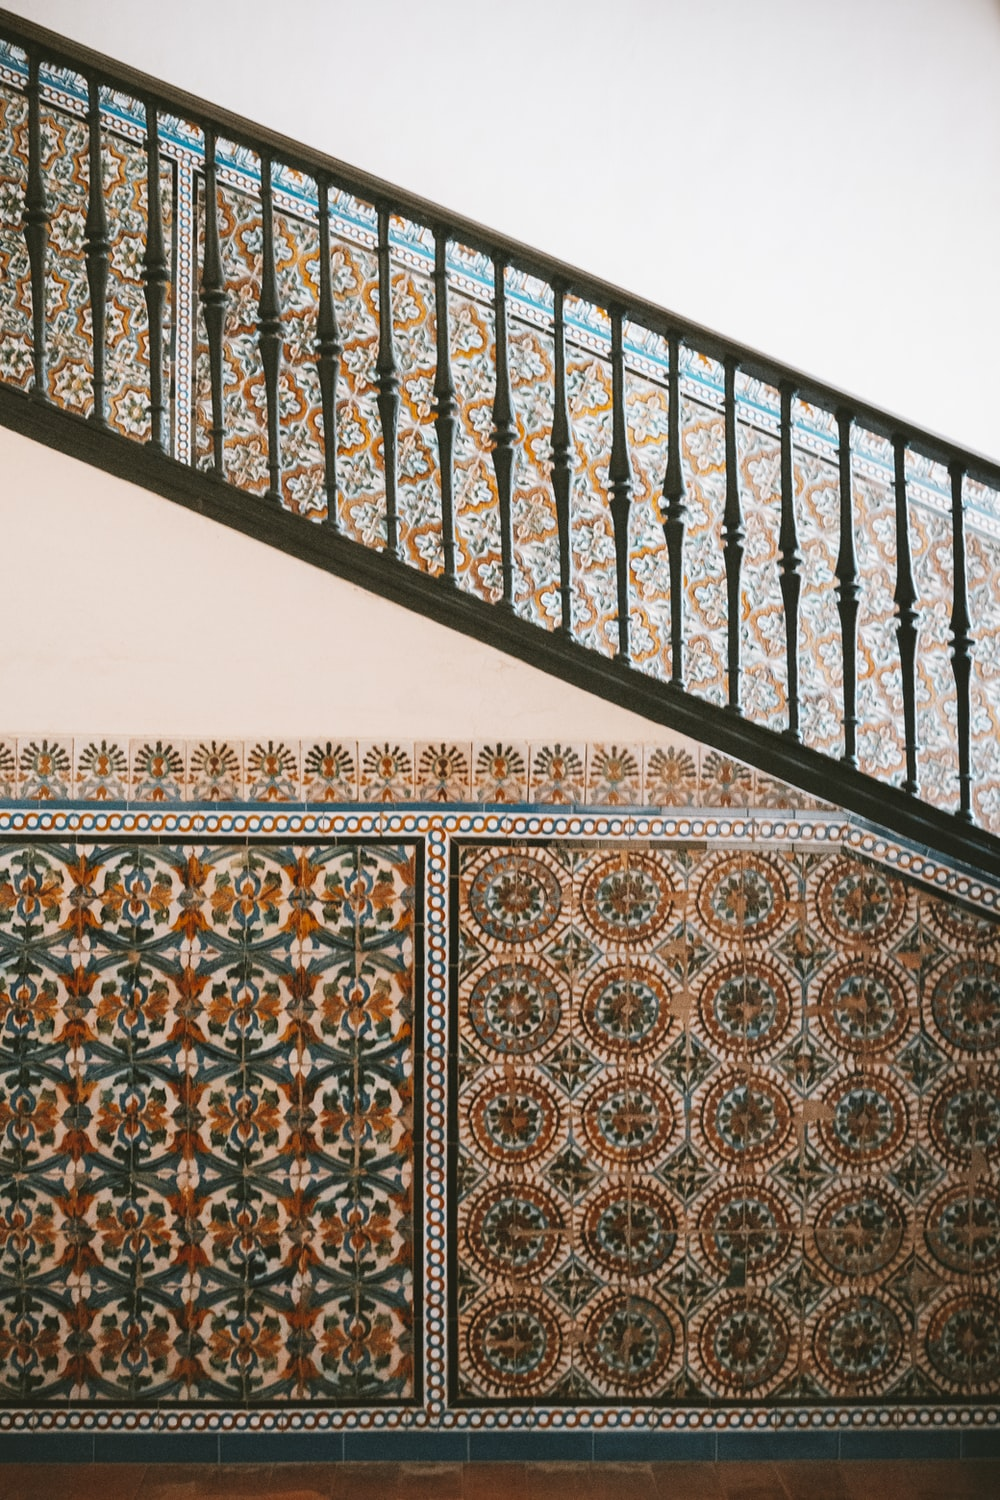 Moroccan Design On The Wall Photo Free Banister Image On Unsplash